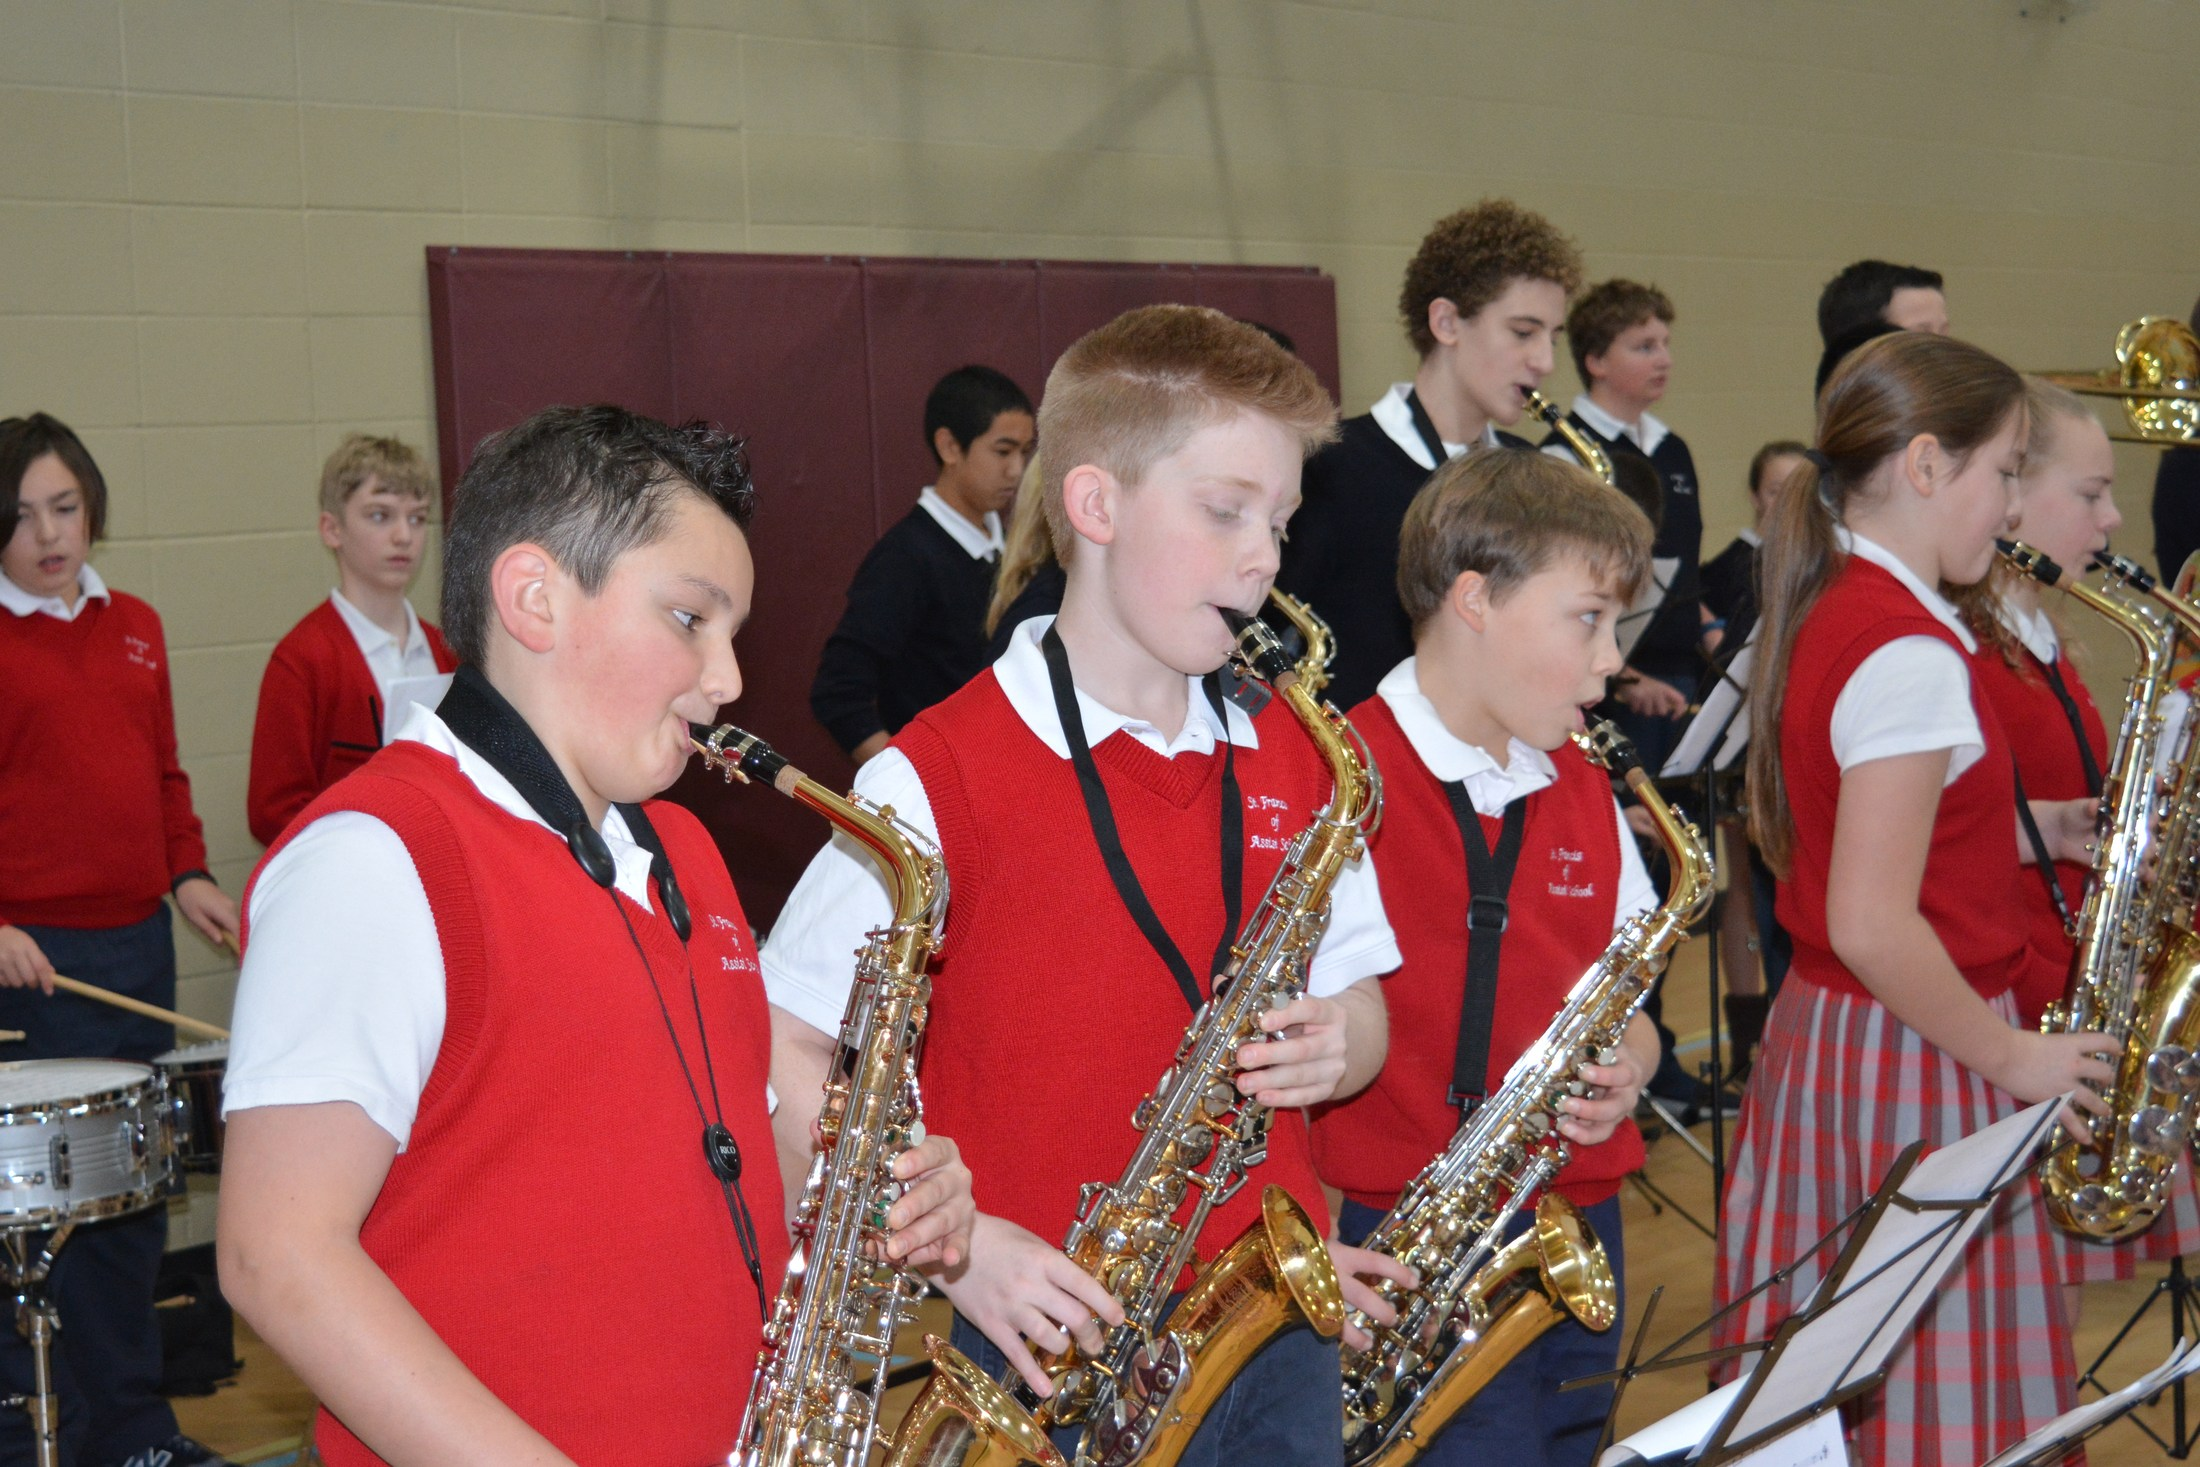 5th grade boys playing saxophone in the school band